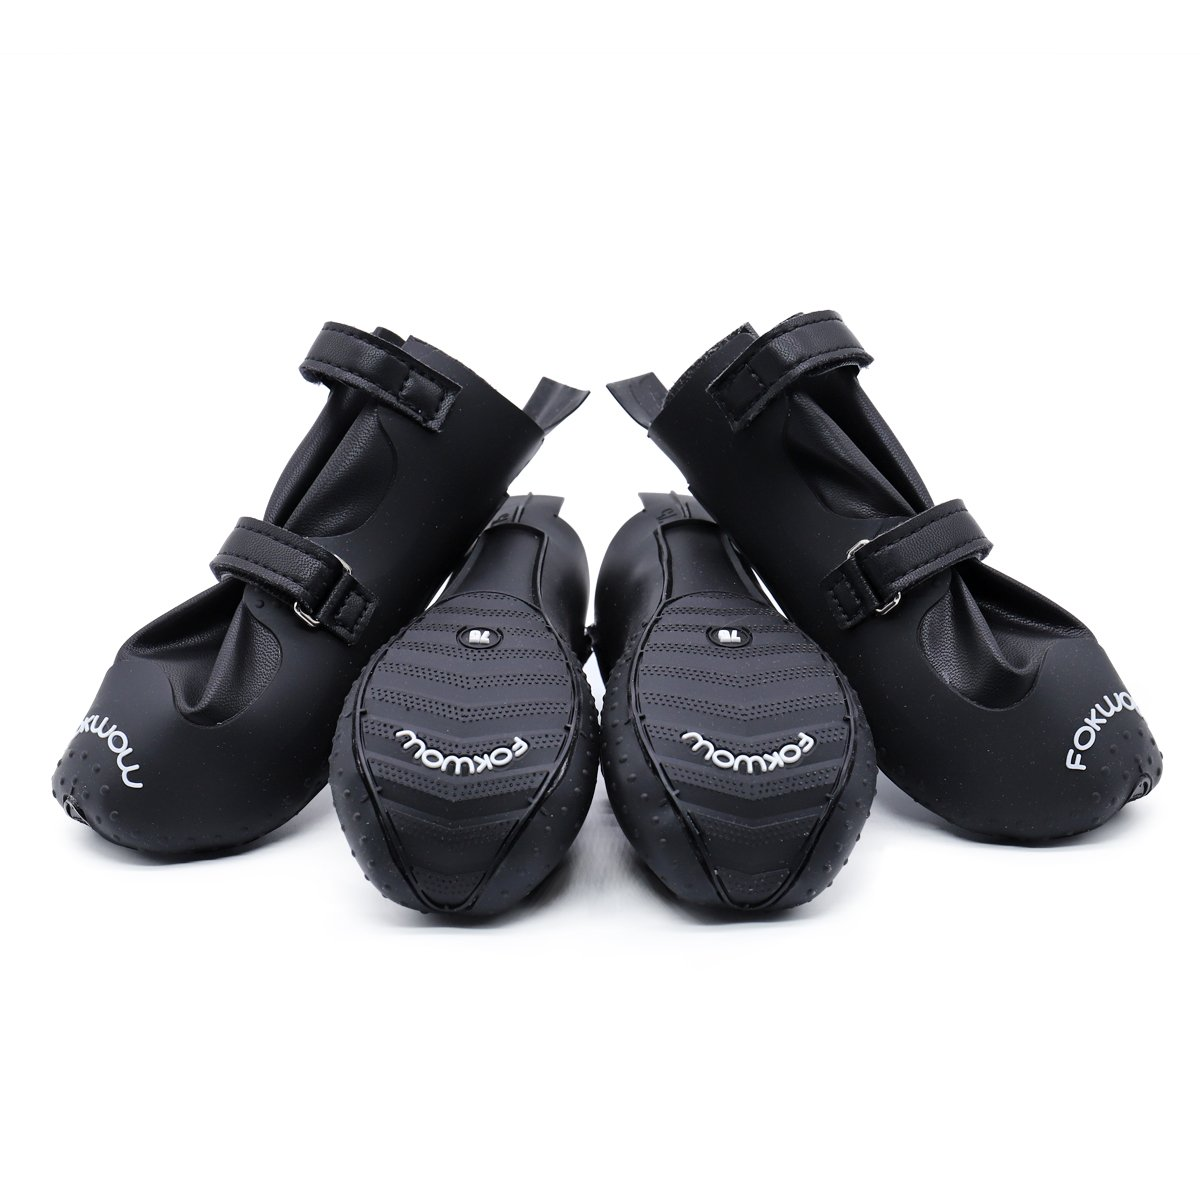 Ohana Waterproof Dog Shoes,Luxury Pet Rain Boots for Small Medium Large Dogs,Ideal Paw Protector for Rainy Snowy Days with Anti Skid Sole Black 4 Pcs